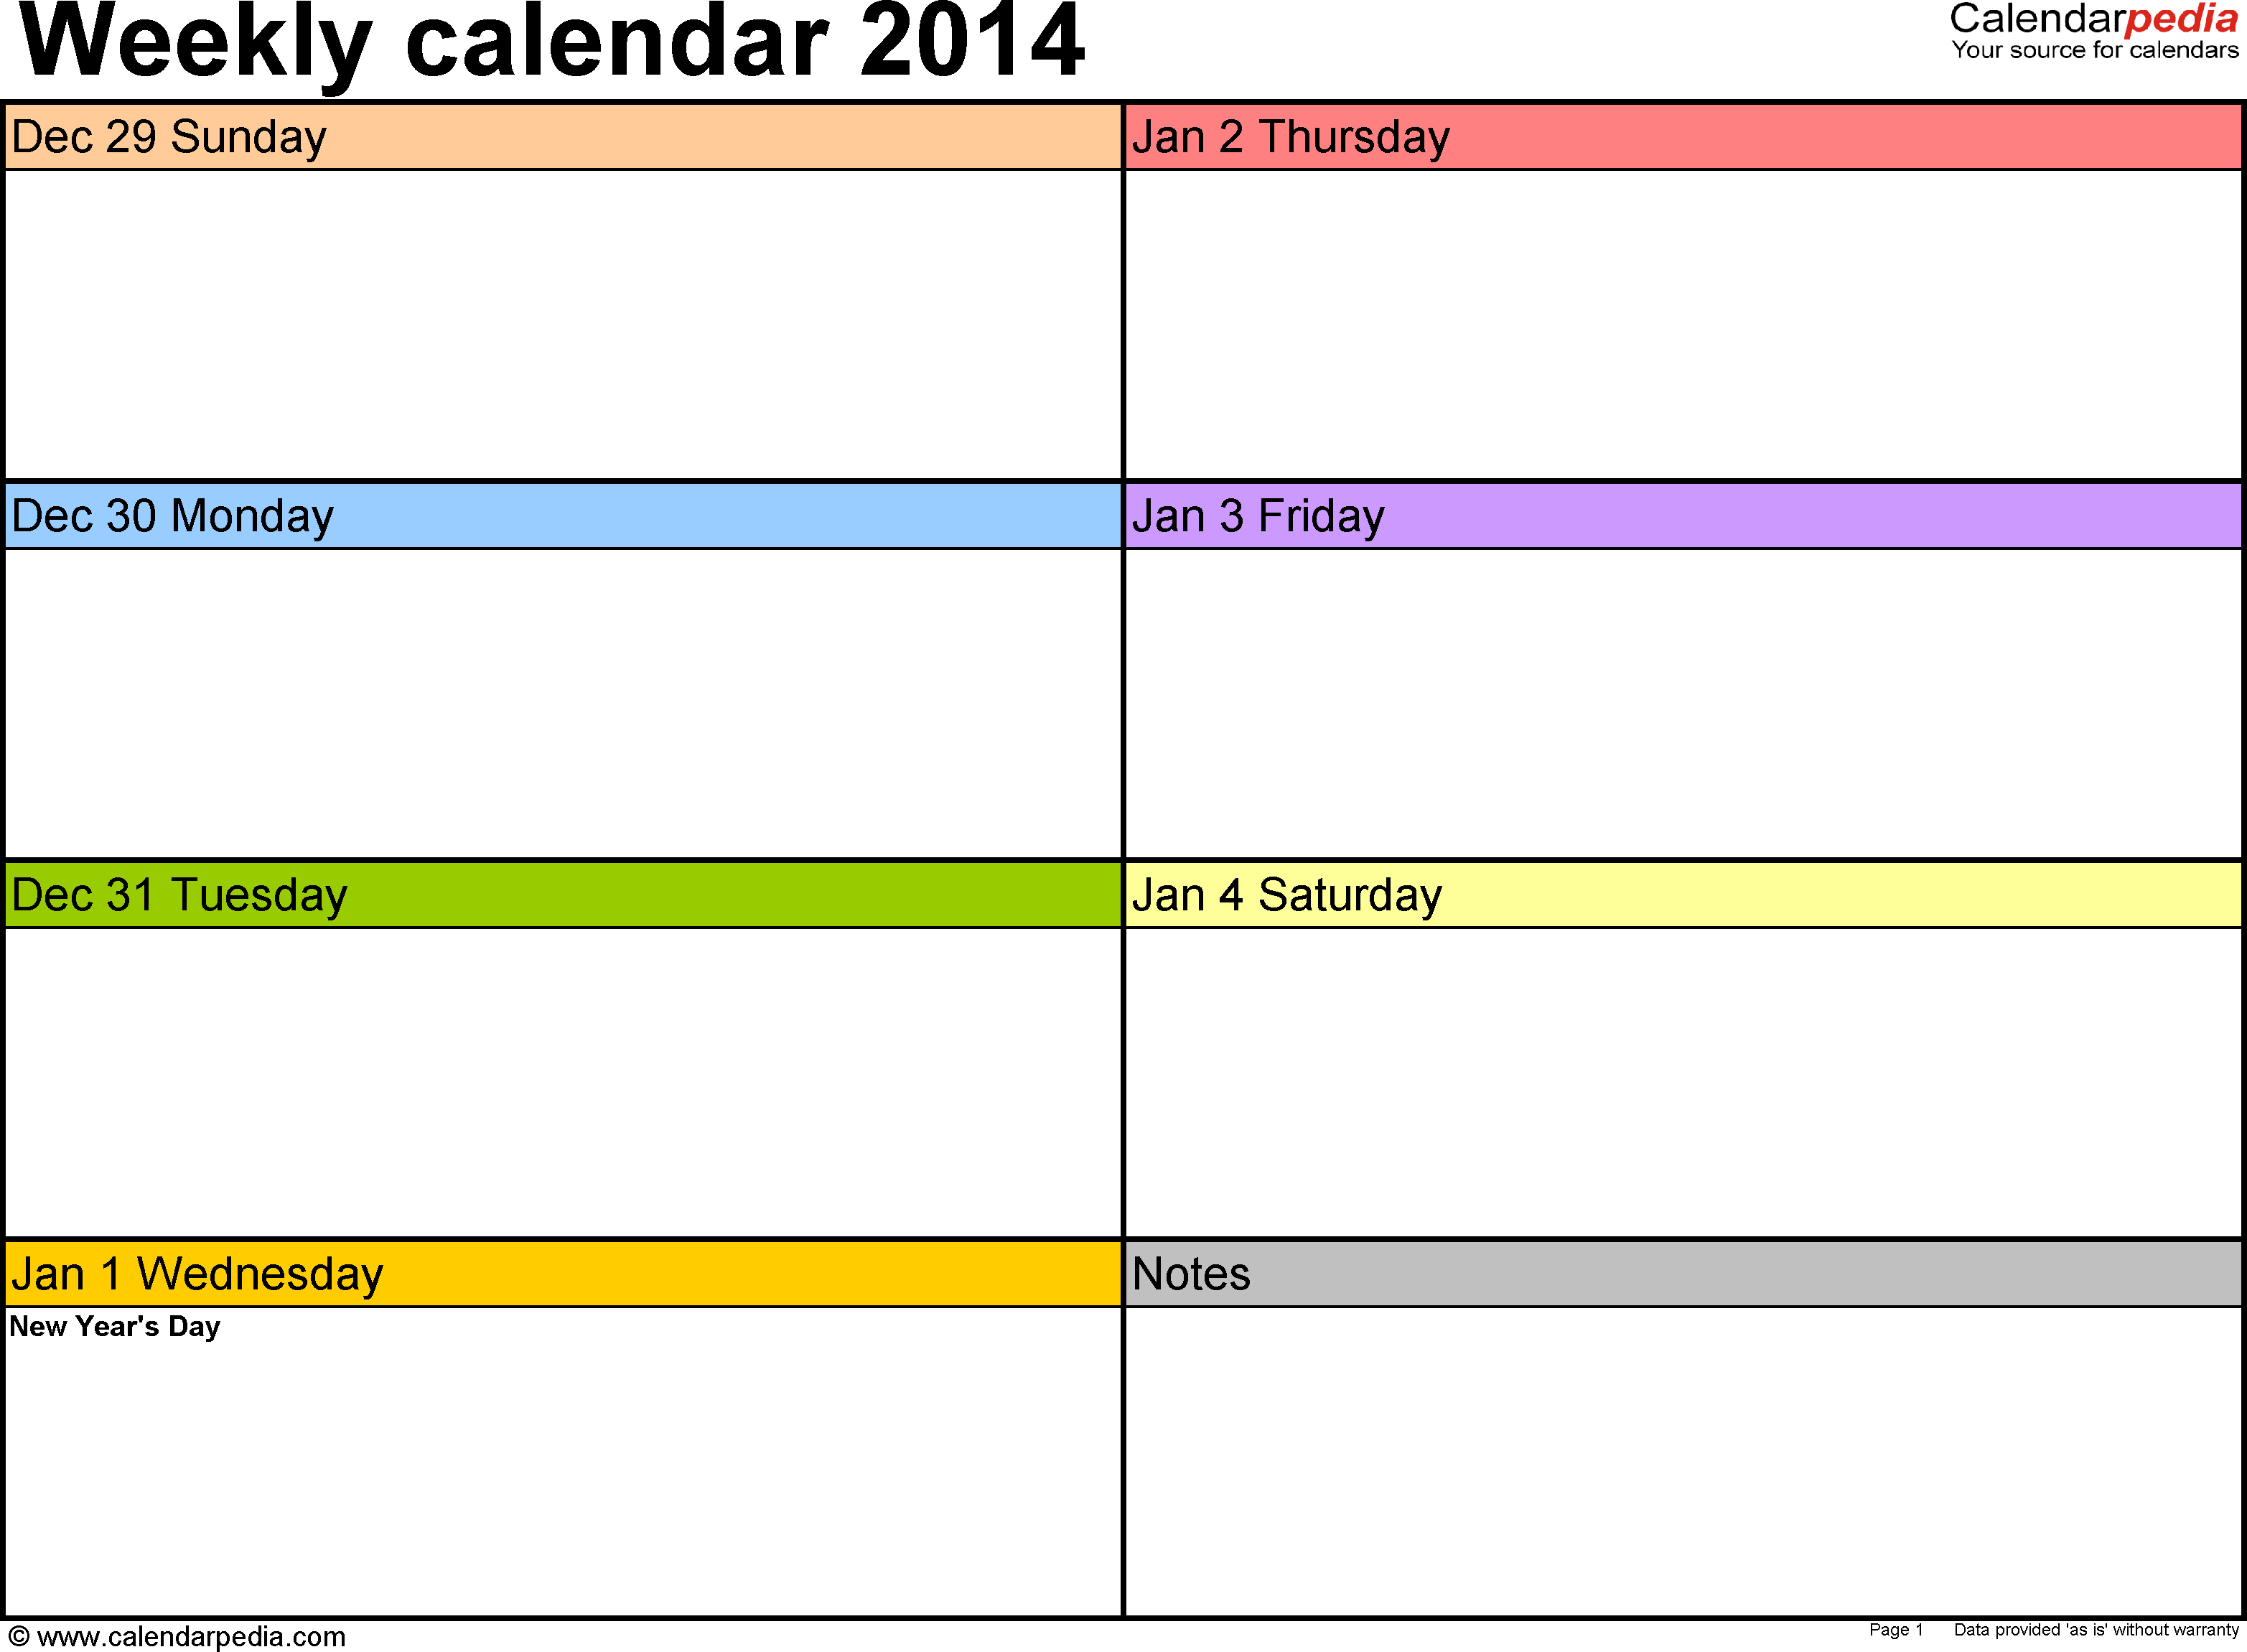 Weekly calendar 2014: template for Word version 2, landscape, 53 pages, in color, week divided into 2 columns (7 days and one field for notes)